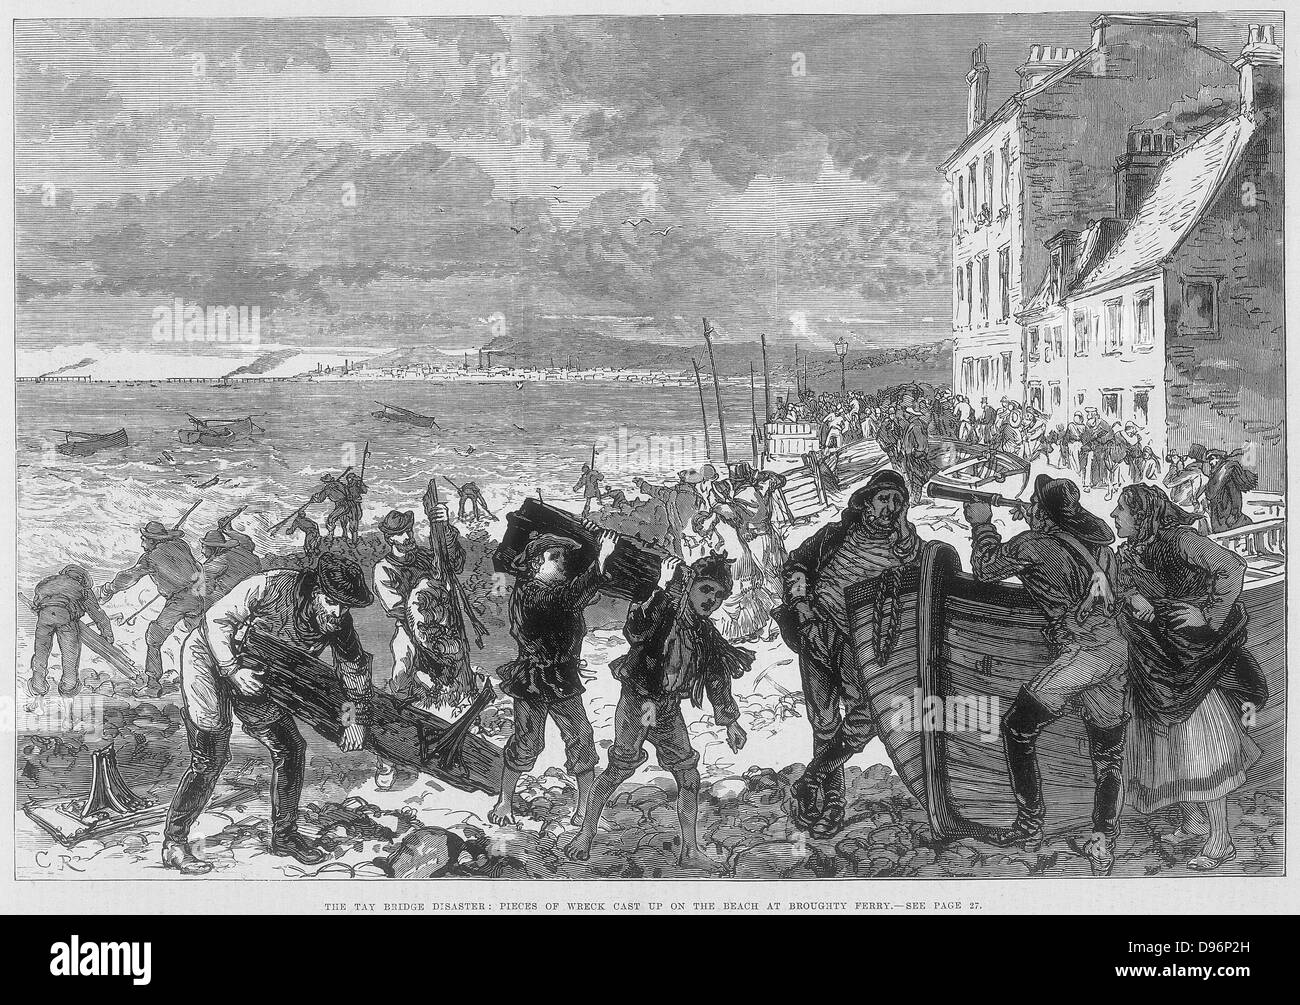 Tay Bridge disaster 28 December 1879. Wreckage on the beach at Broughty Ferry. Engraving from 'The Illustrated - Stock Image